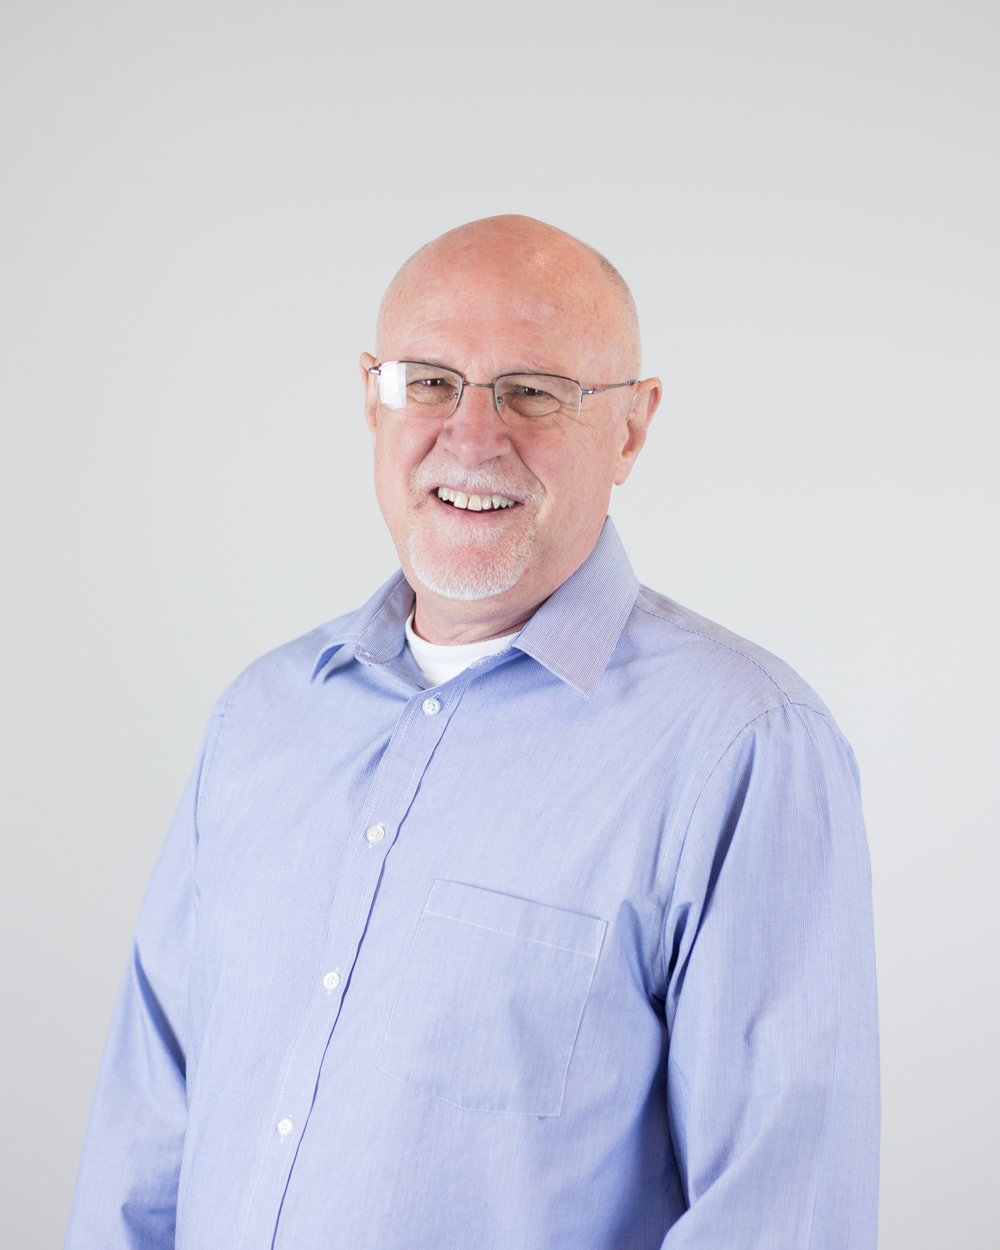 JERRY MCCONNELL, Senior Adults Pastor